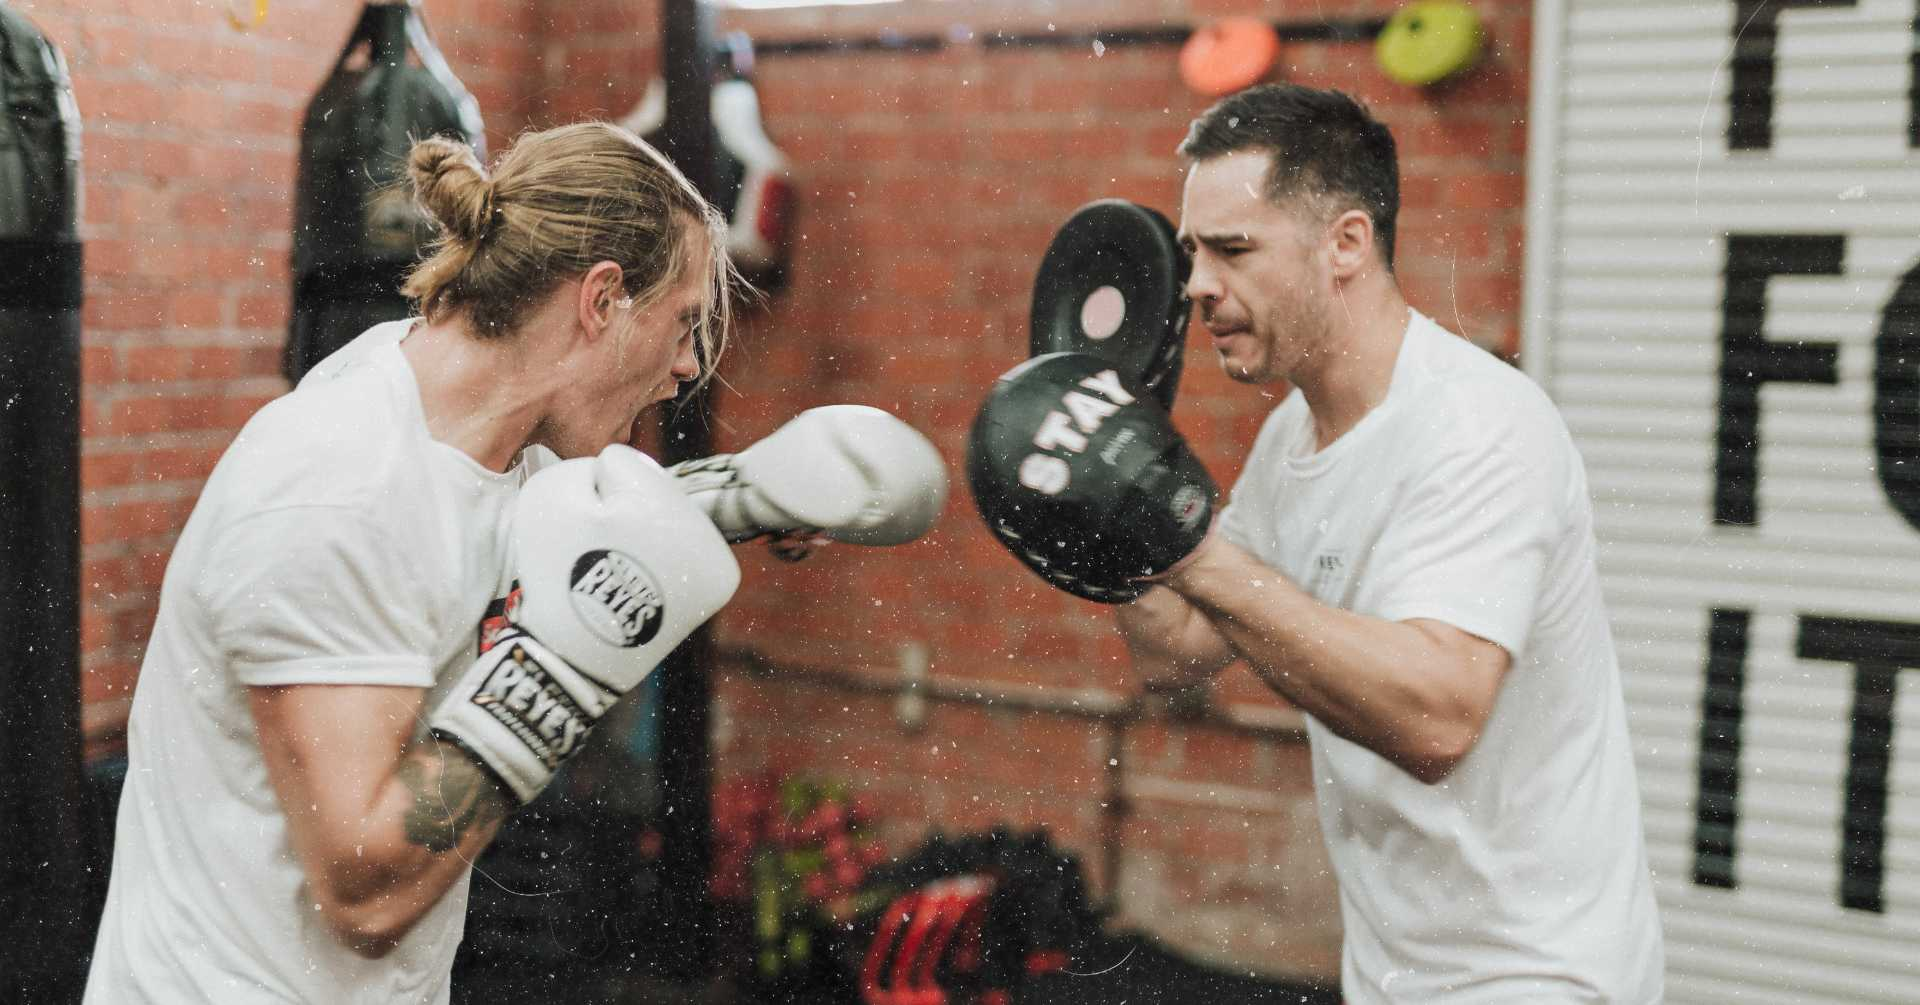 Is Boxing Training Good for Cardio, Strength, and Weight Loss?